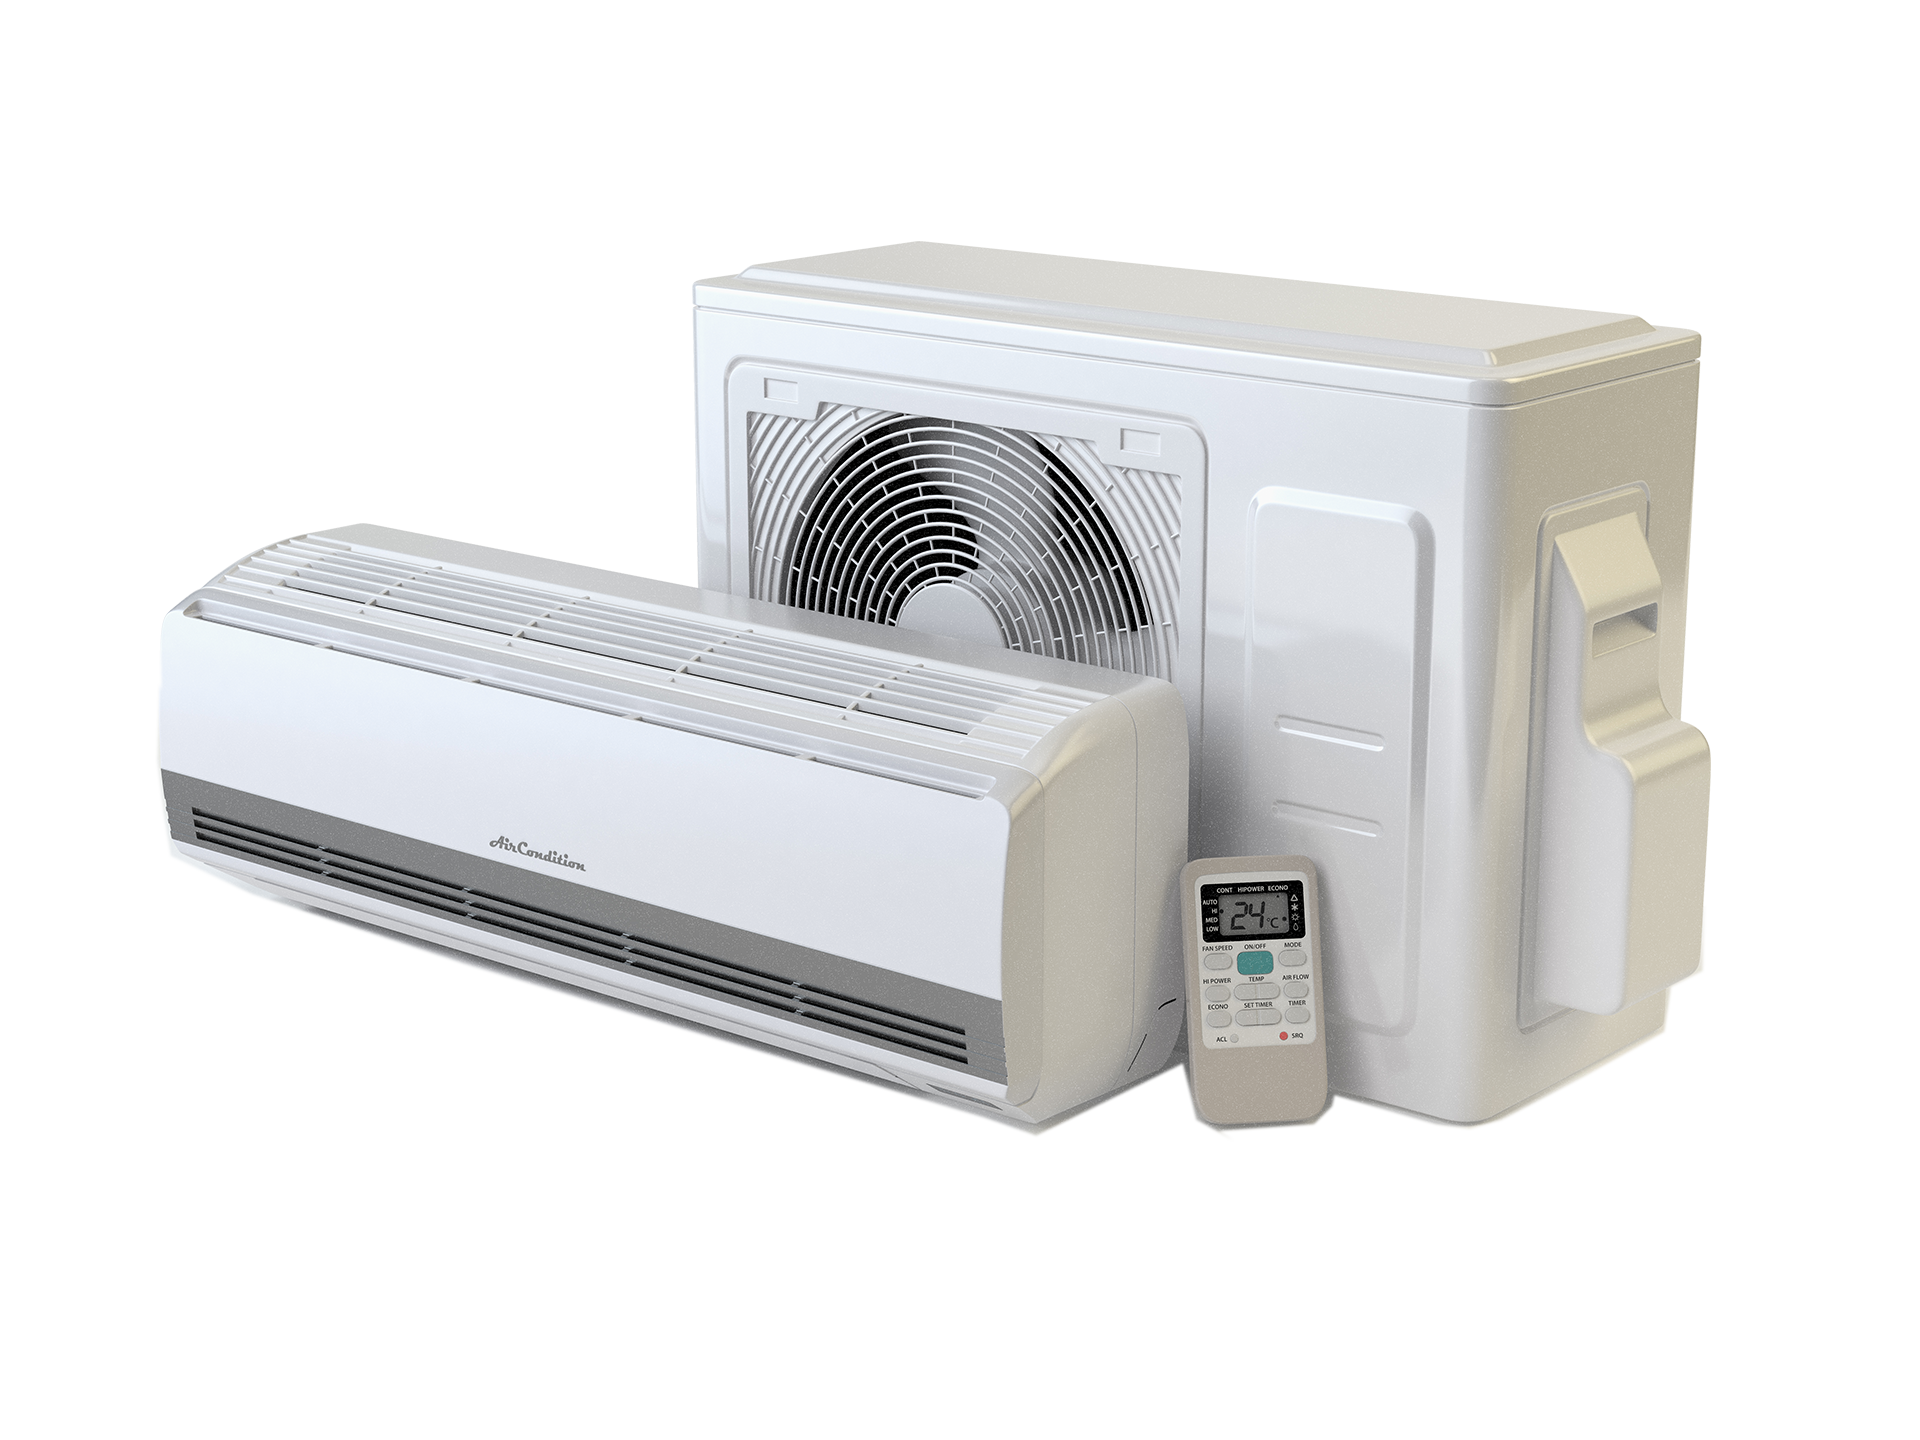 Ductless AC Image